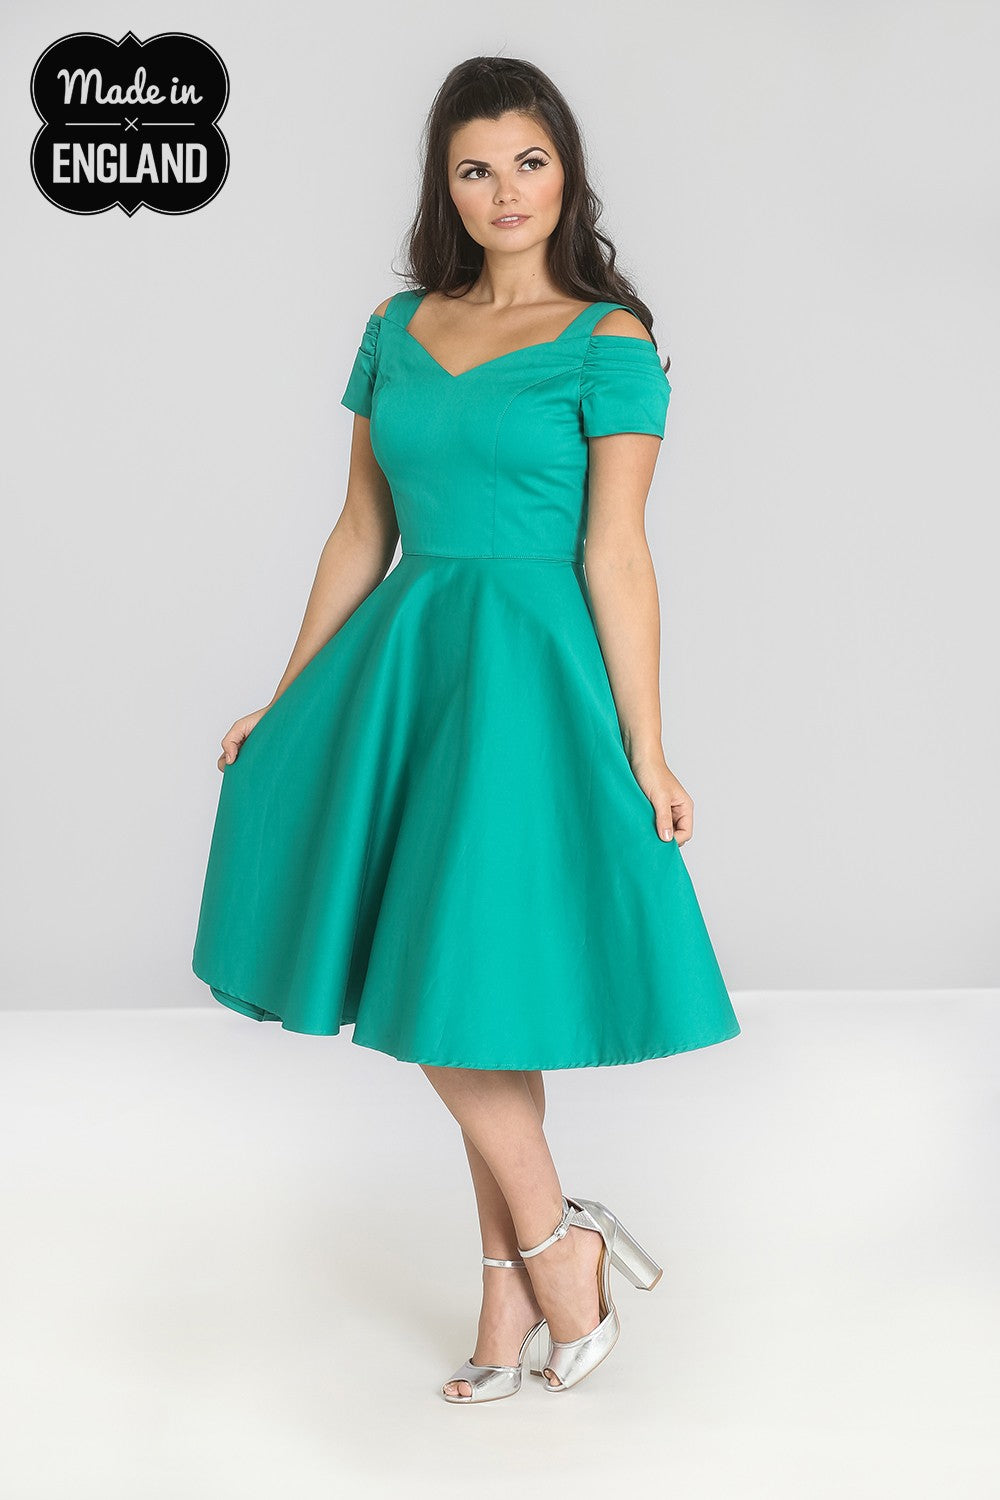 Isabella 1950s Prom Dress in Teal